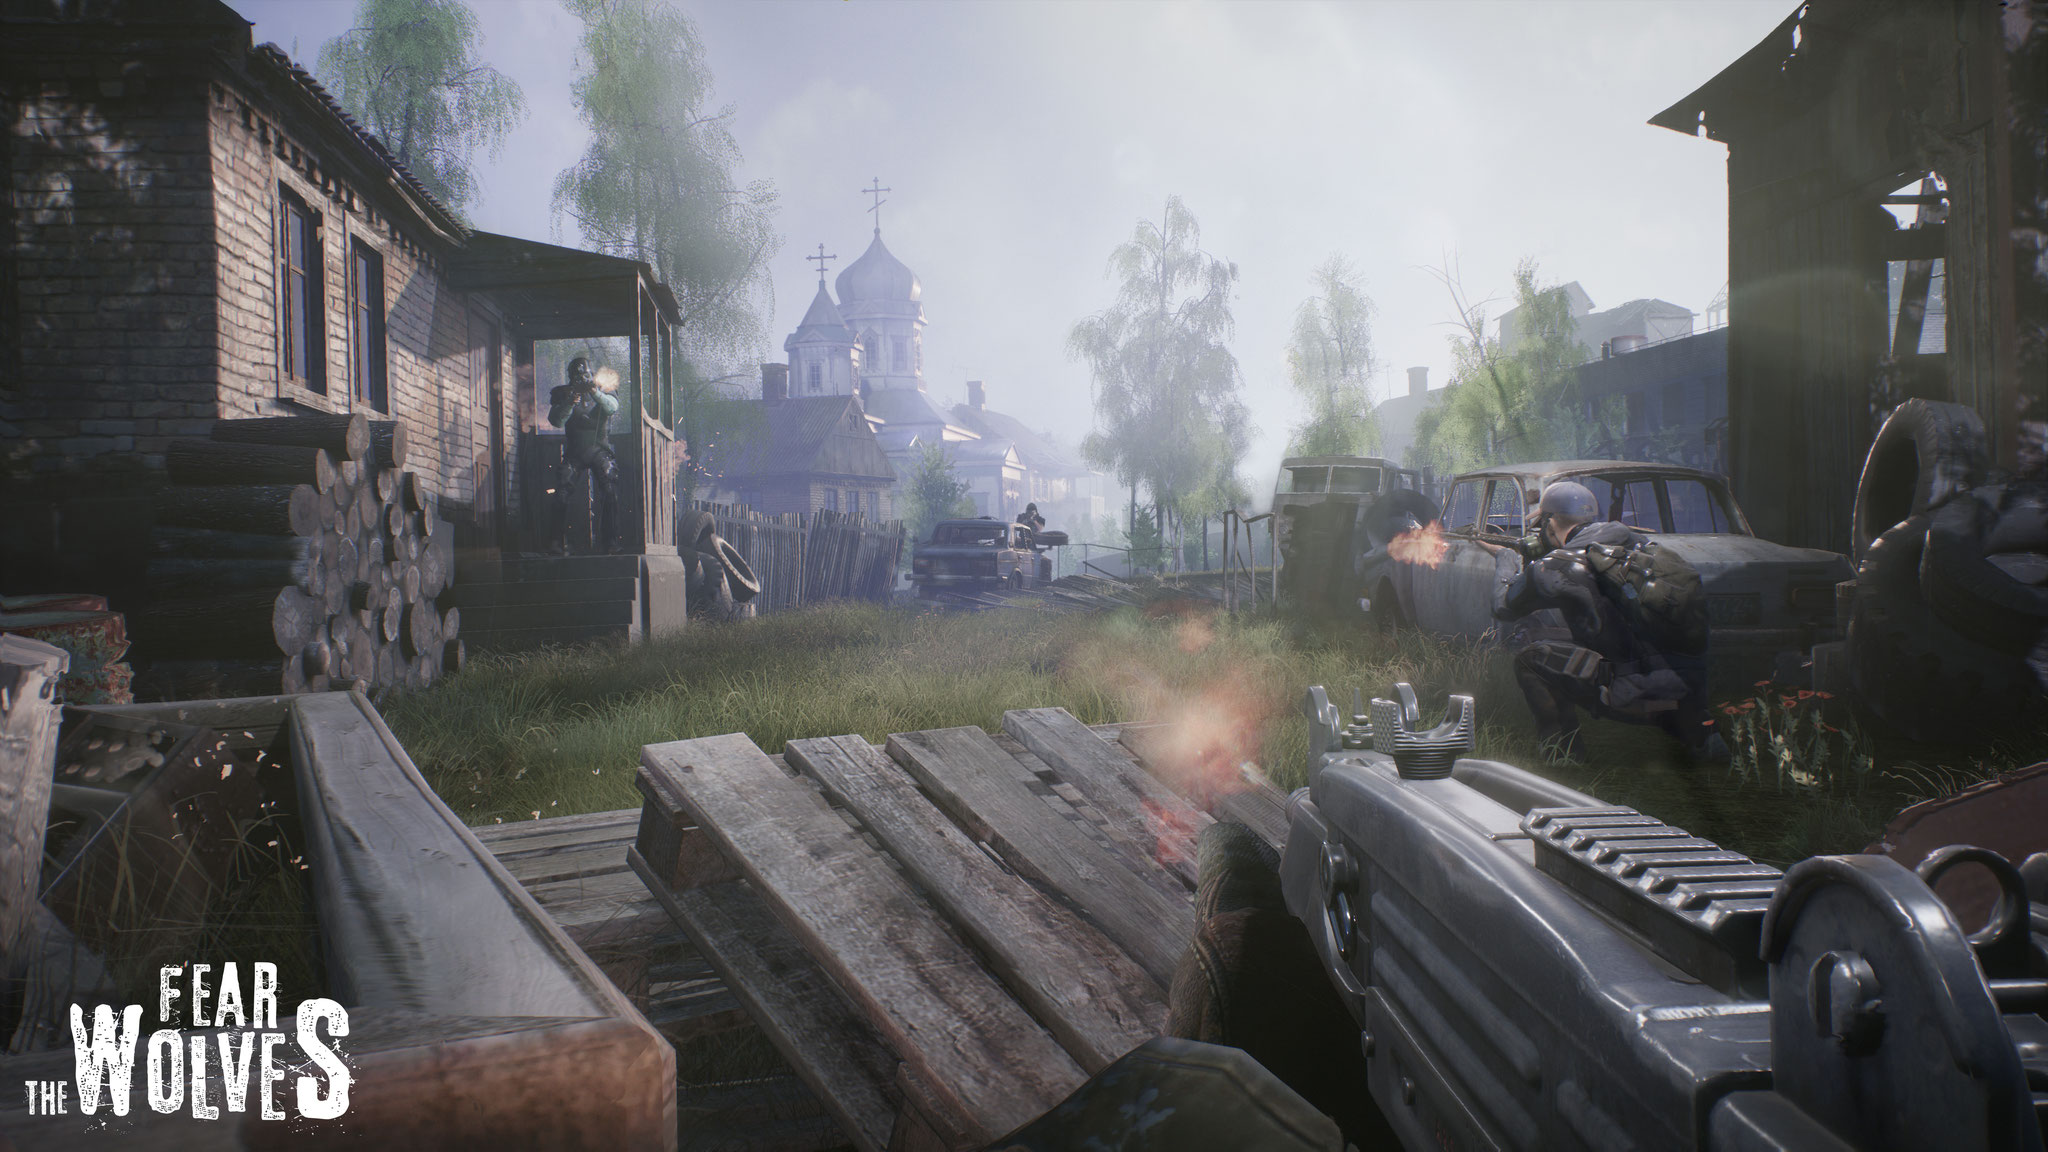 Fear the Wolves Gameplay Screenshots #5 Bild: Focus Home Interactive